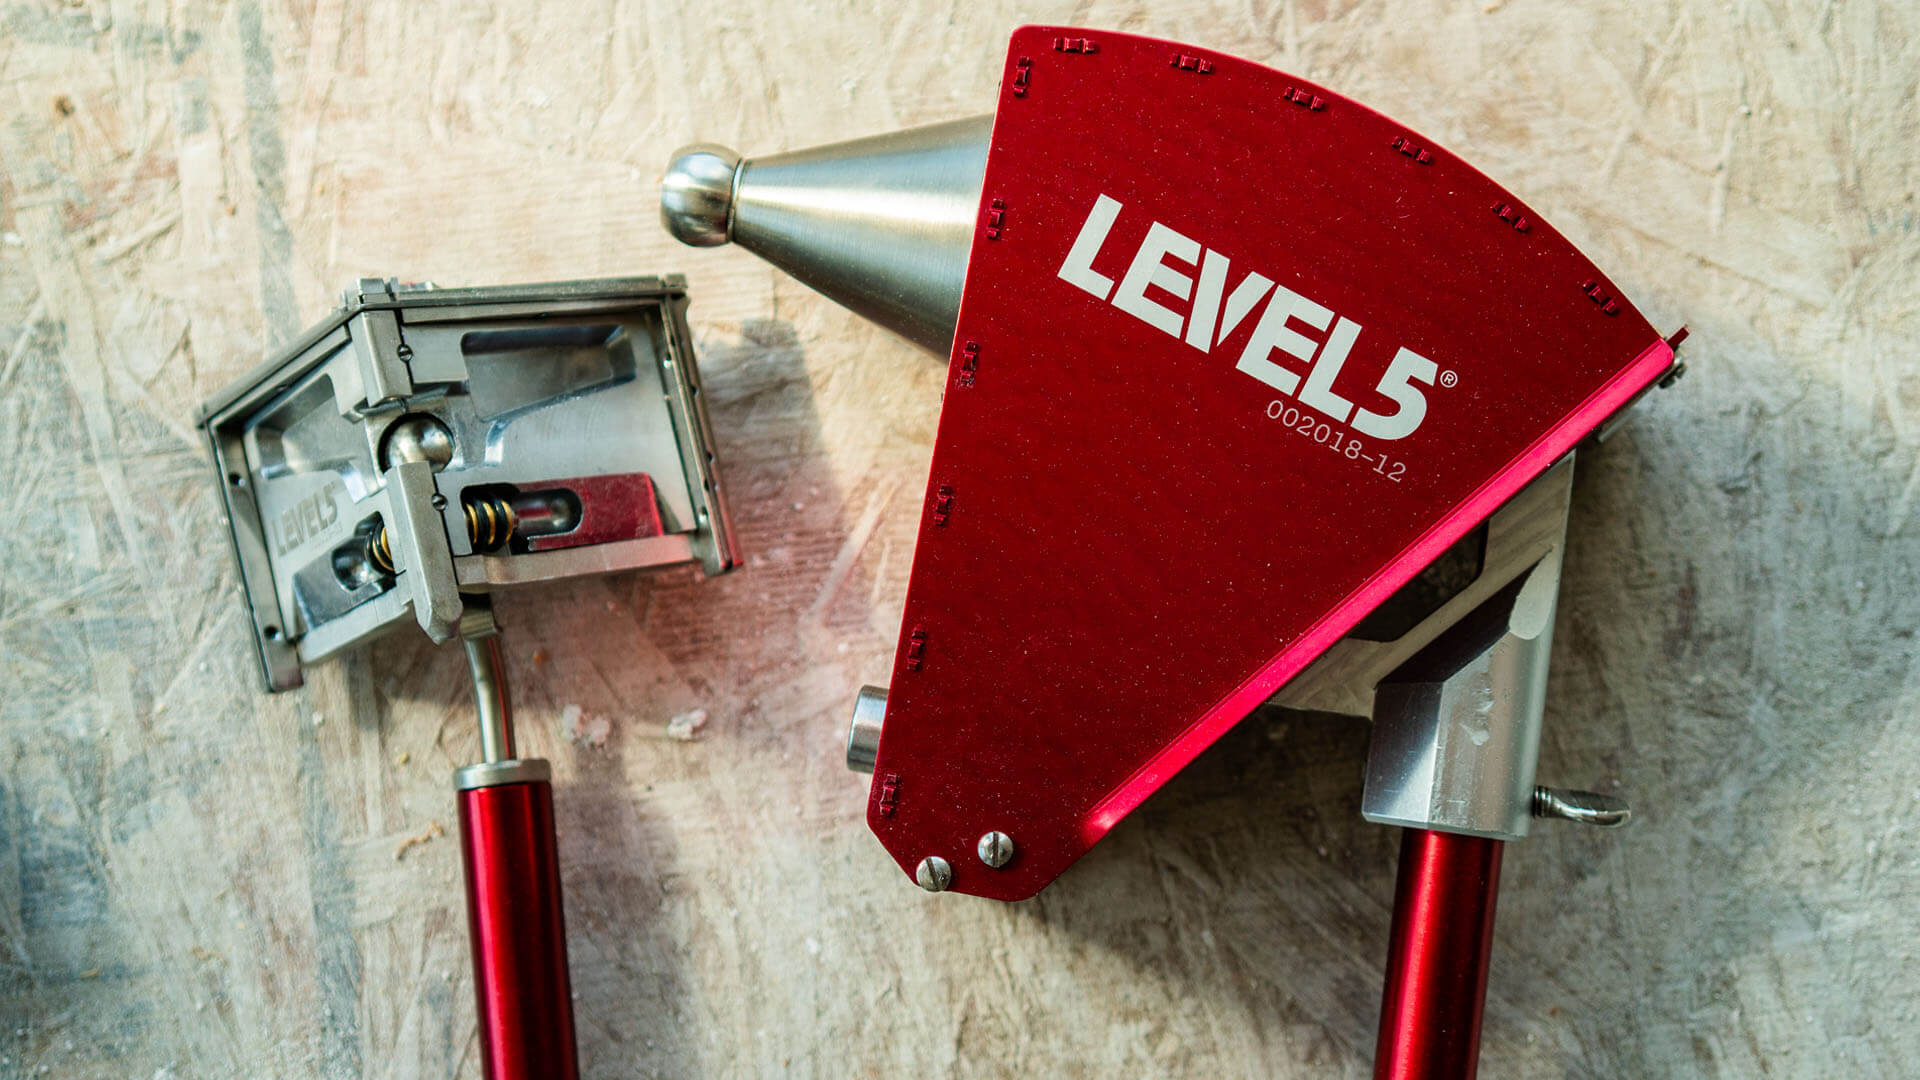 LEVEL5's 7-Year Automatic Tool Warranty